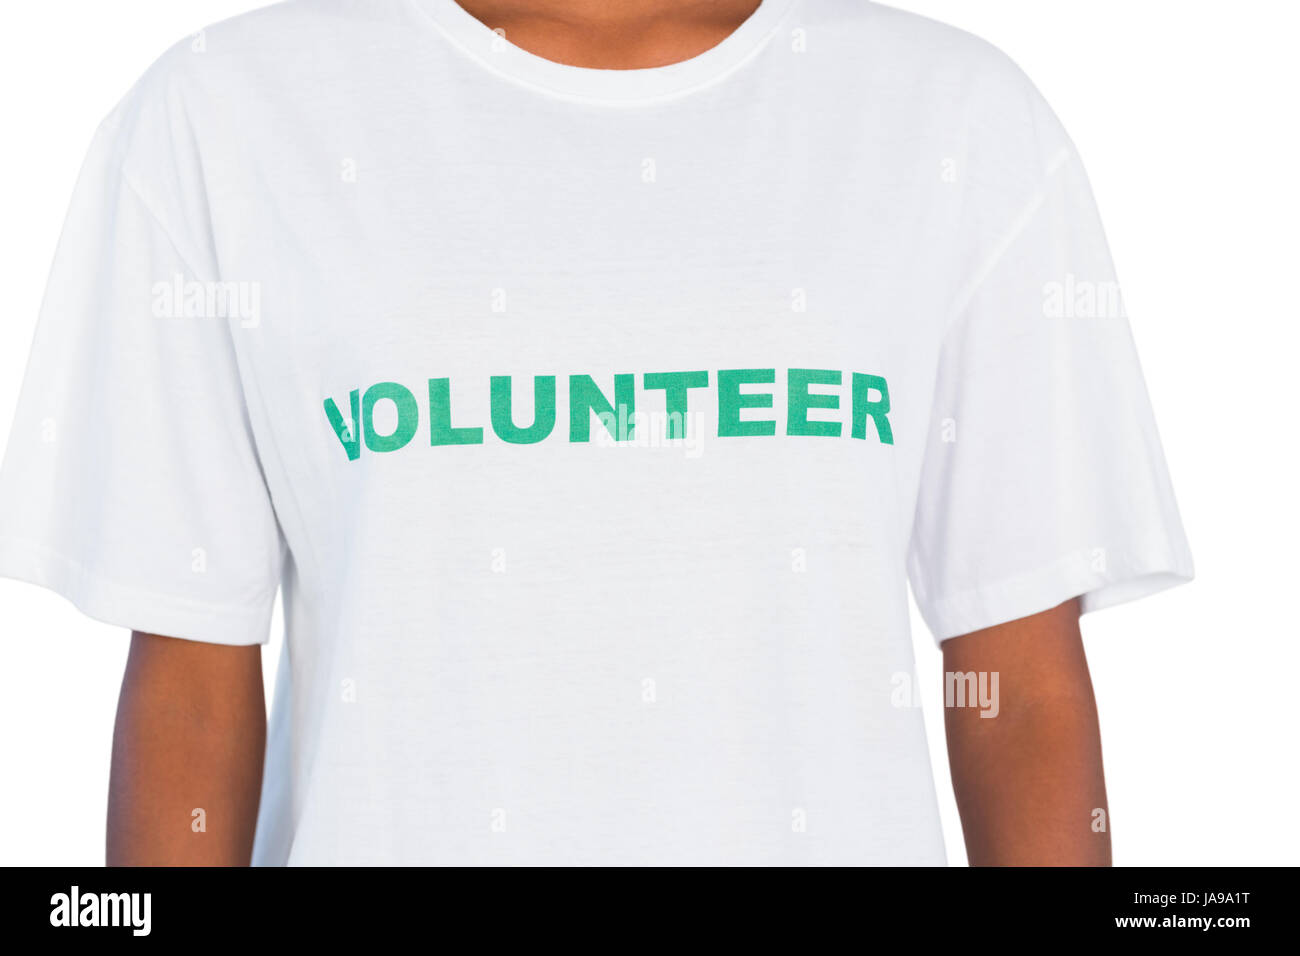 Woman wearing volunteer tshirt on white background - Stock Image